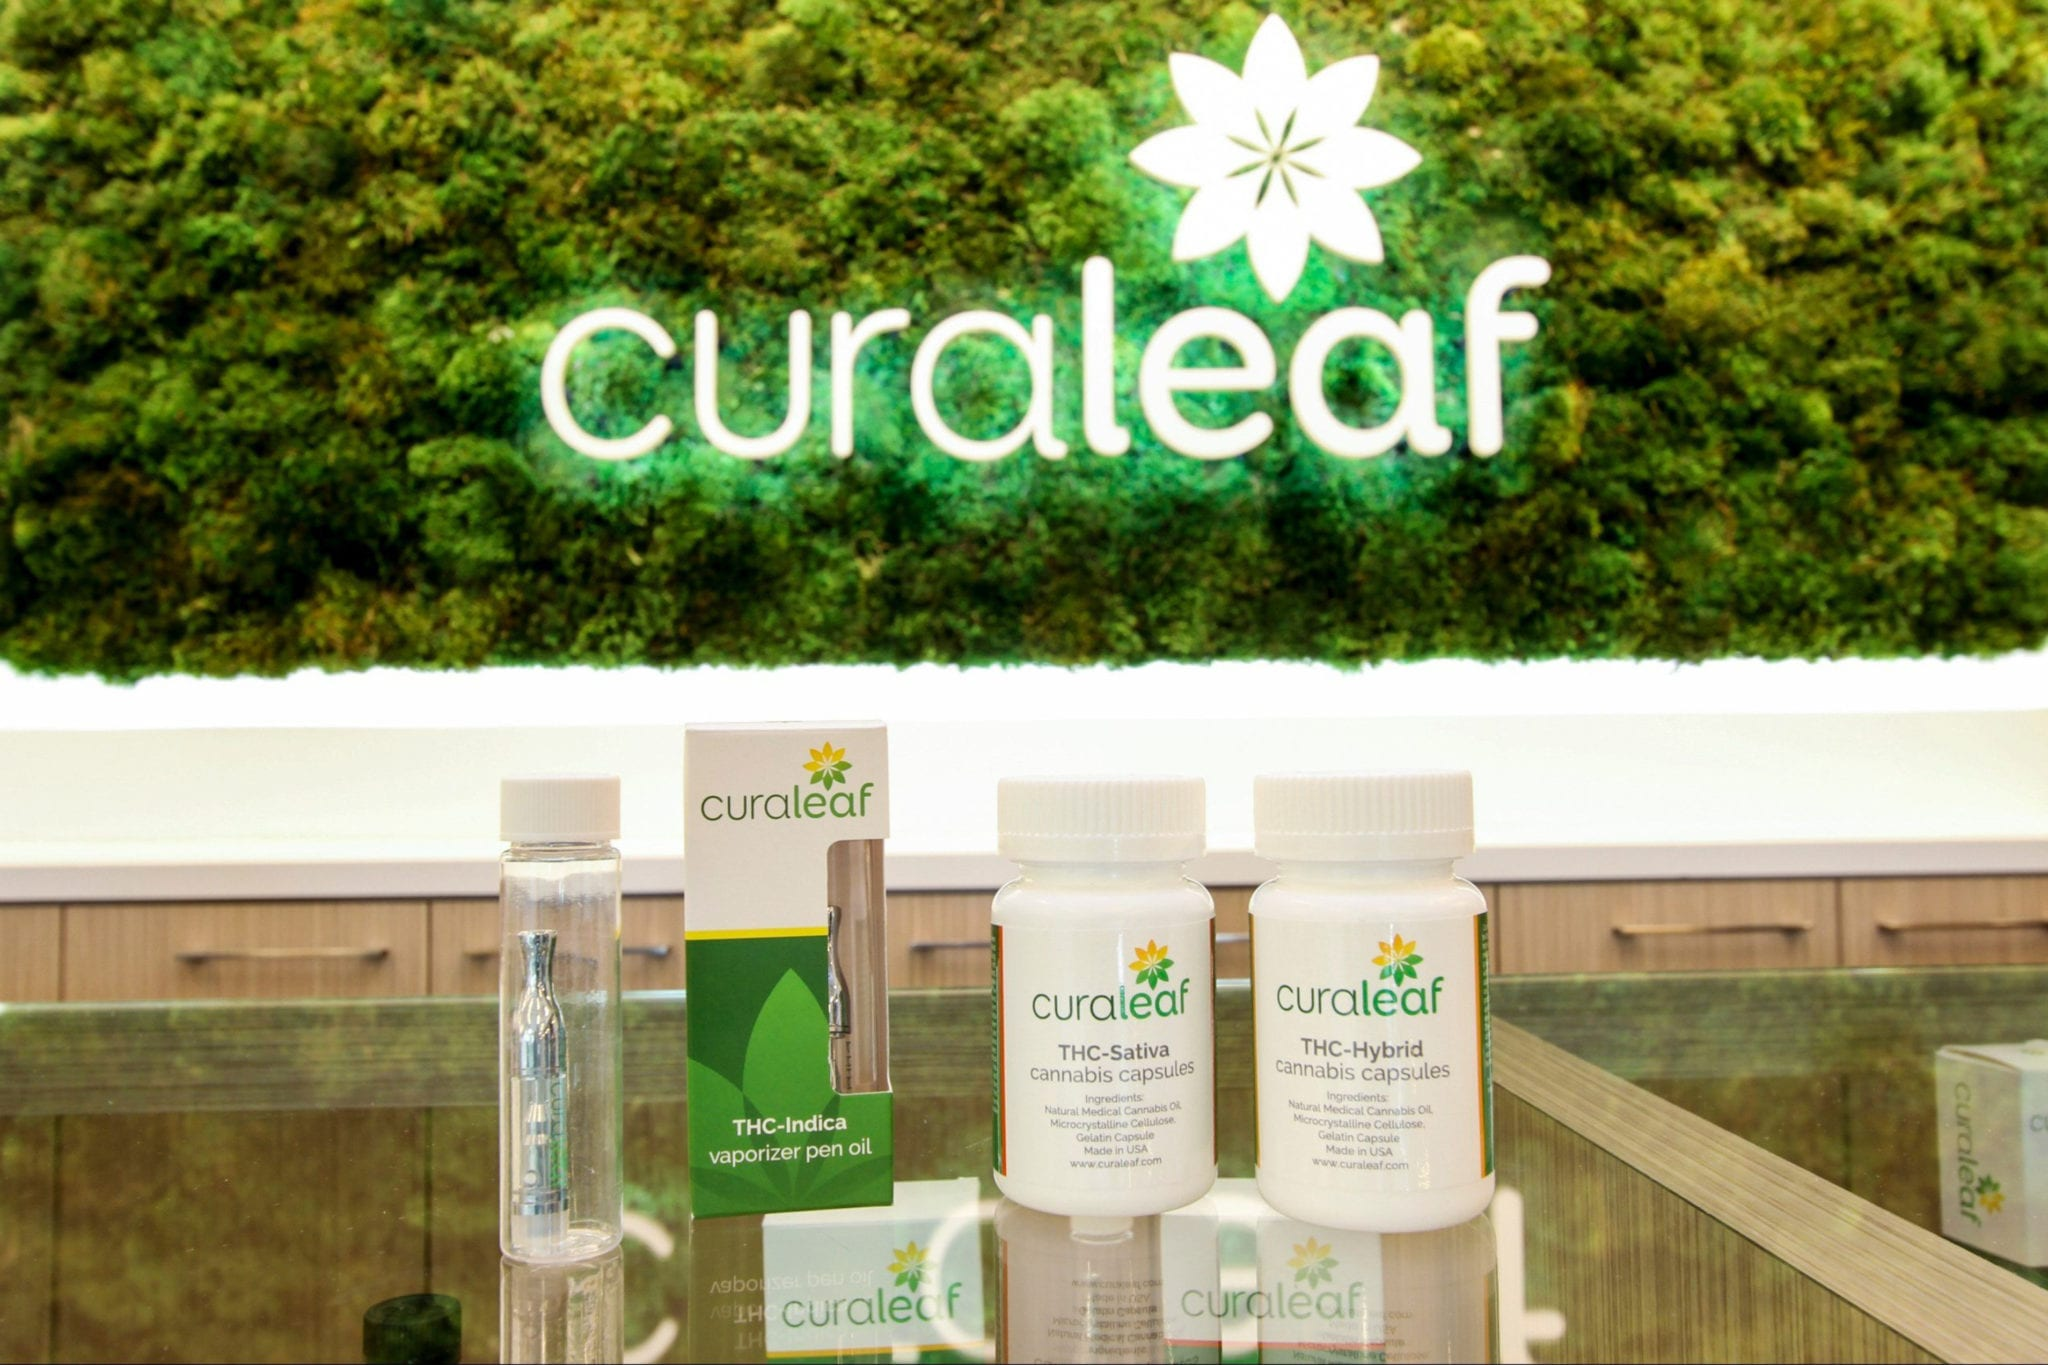 Curaleaf: Another American Pot Company Outshining its Canadian Rivals